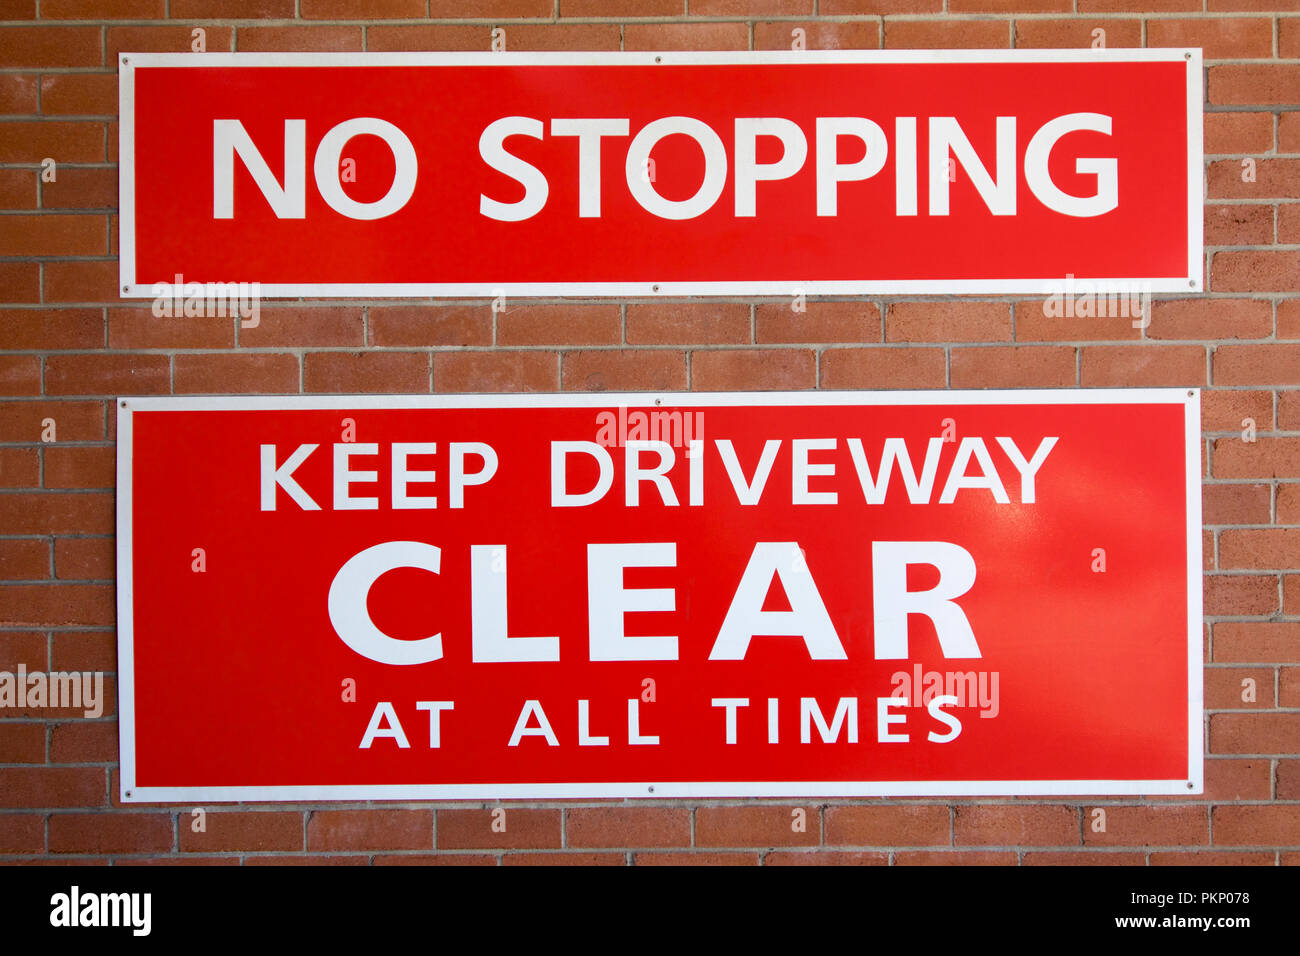 No Stopping Keep Driveway Clear at all Times sign. - Stock Image